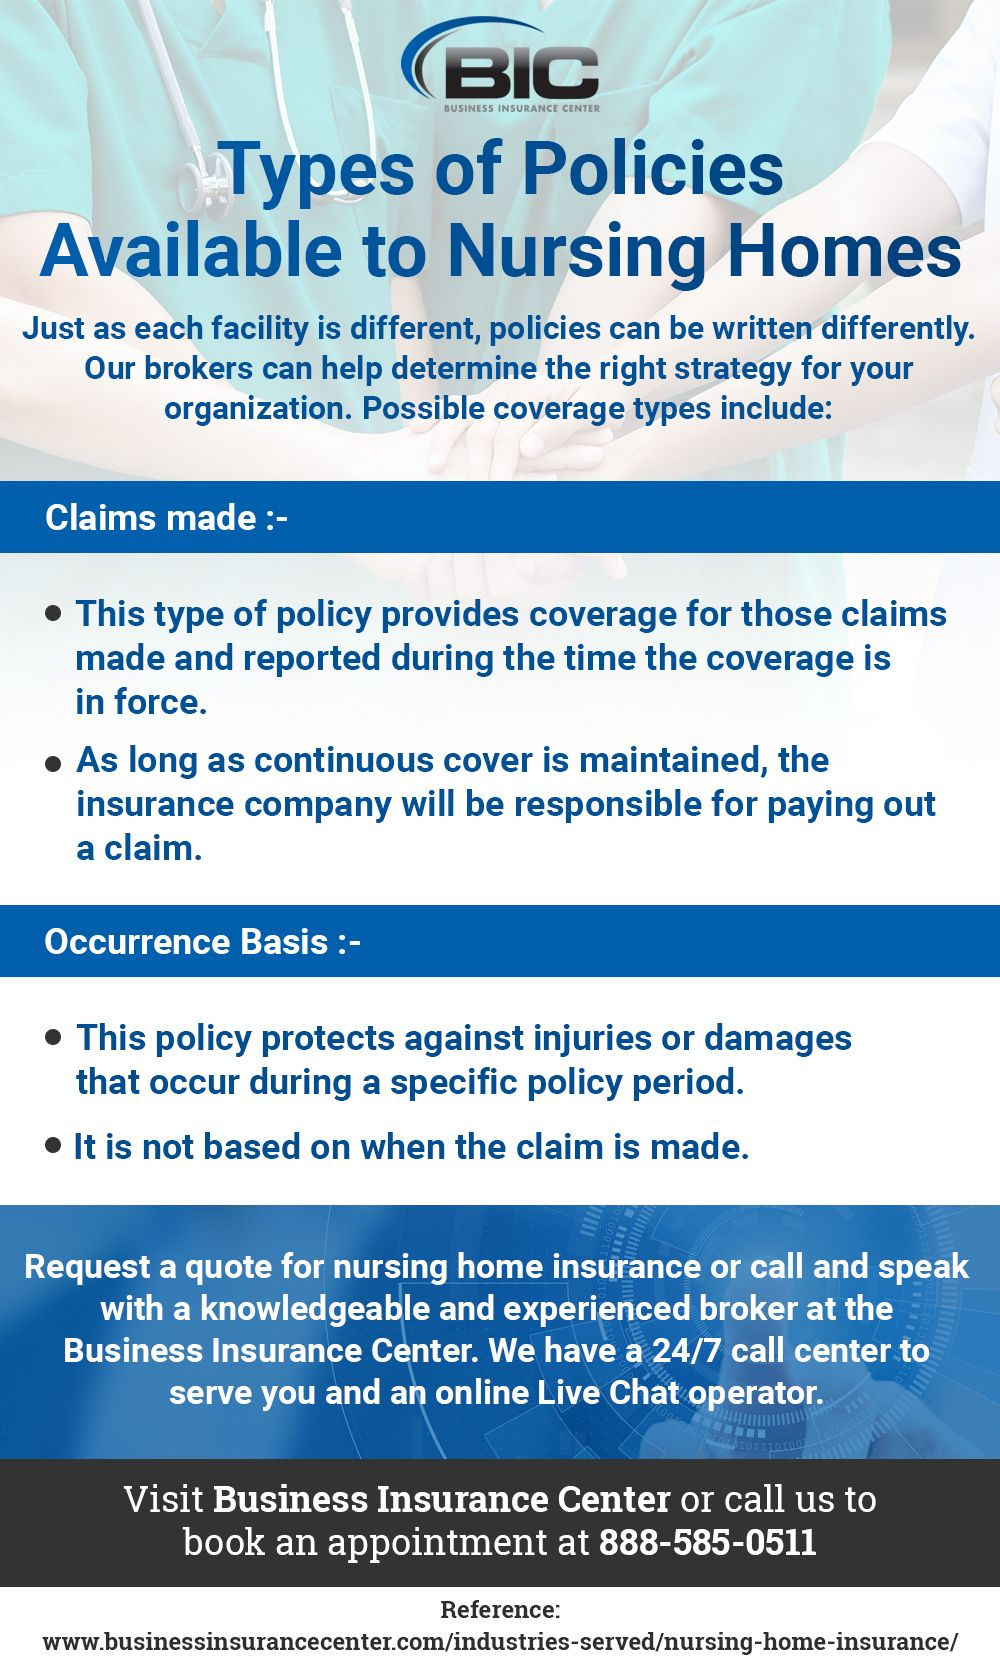 Work With The Expert Brokers At Business Insurance Center To Make